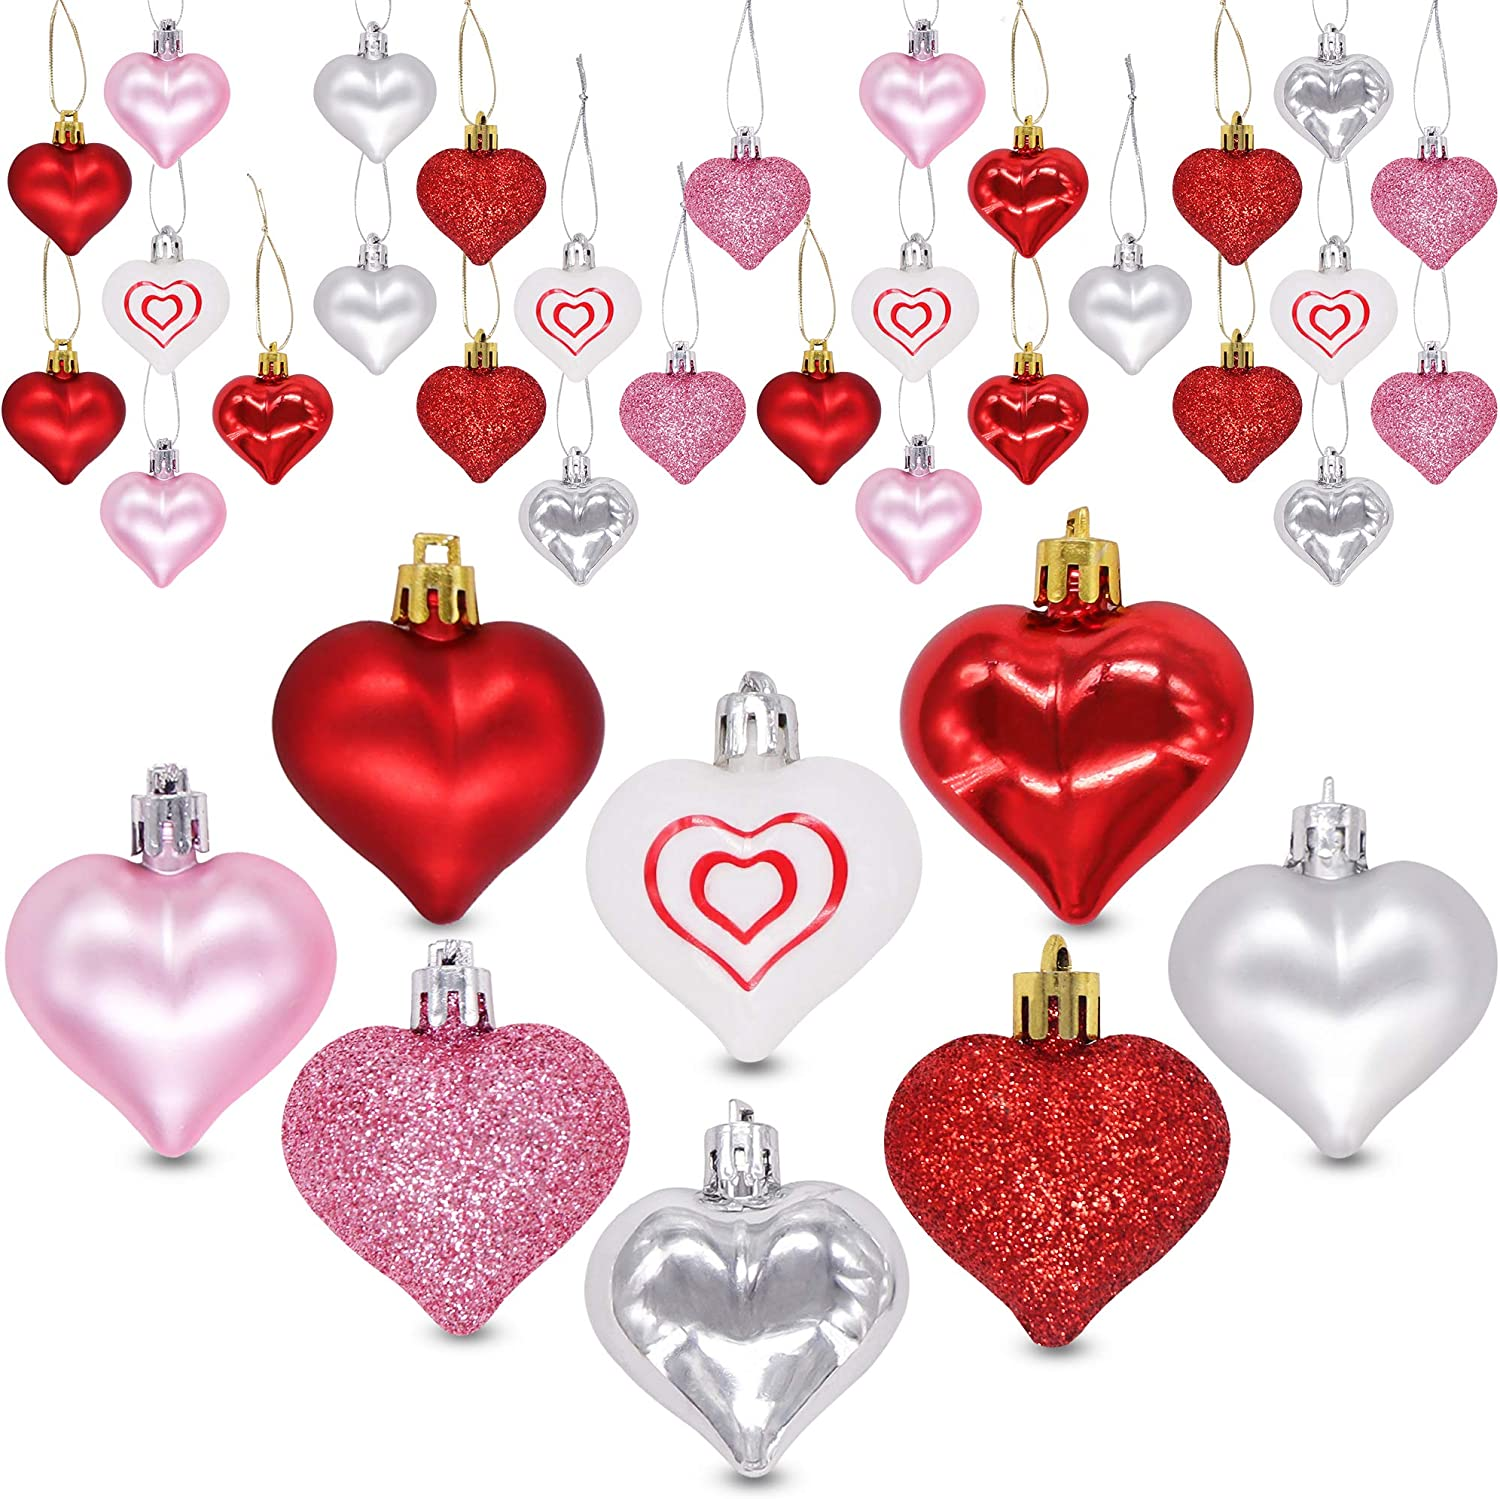 Ivenf Valentine's Day Decorations Heart Shaped Ornaments,36 Pcs Red Pink Silver White Plastic Hanging Baubles, Tree Ball Heart Glitter Decor for Home Party Decorations Gift